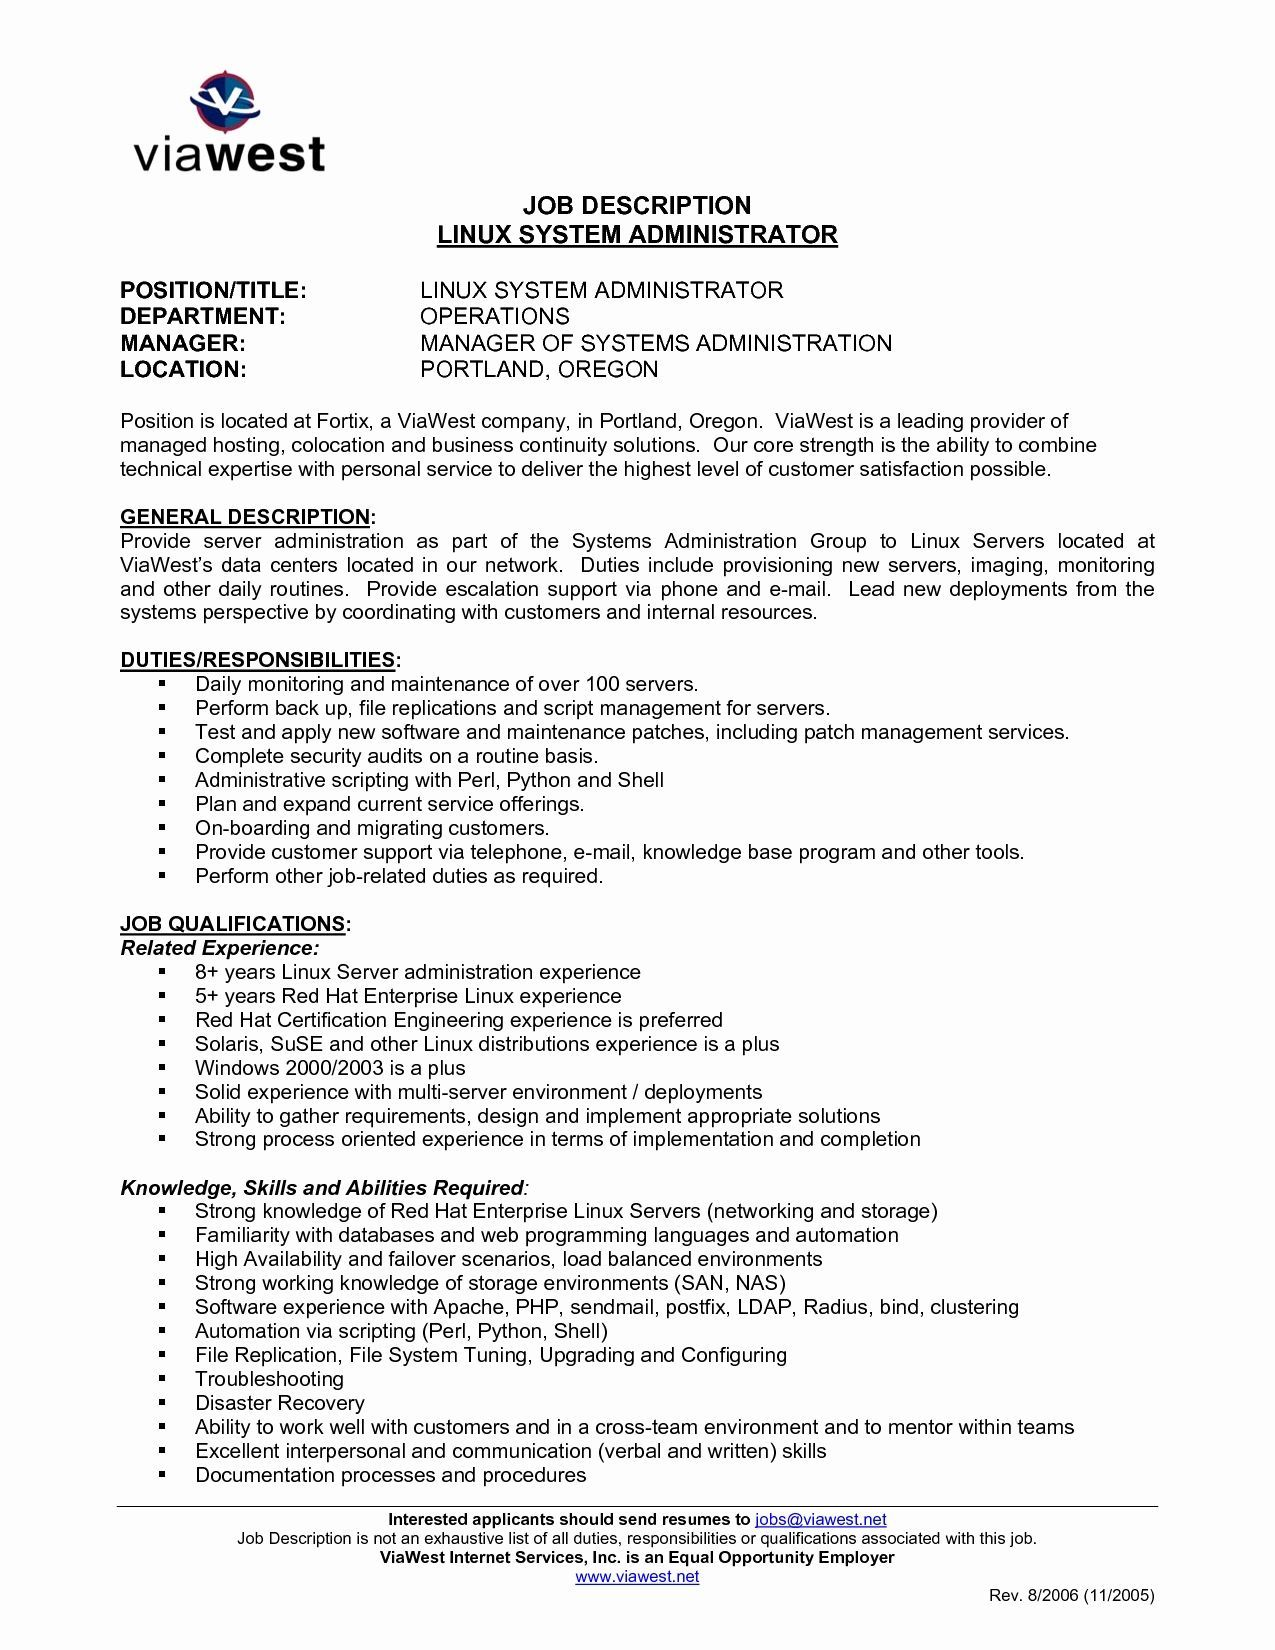 Resume Format For 5 Years Experience In Operations Resume Format System Administrator Resume Format Resume